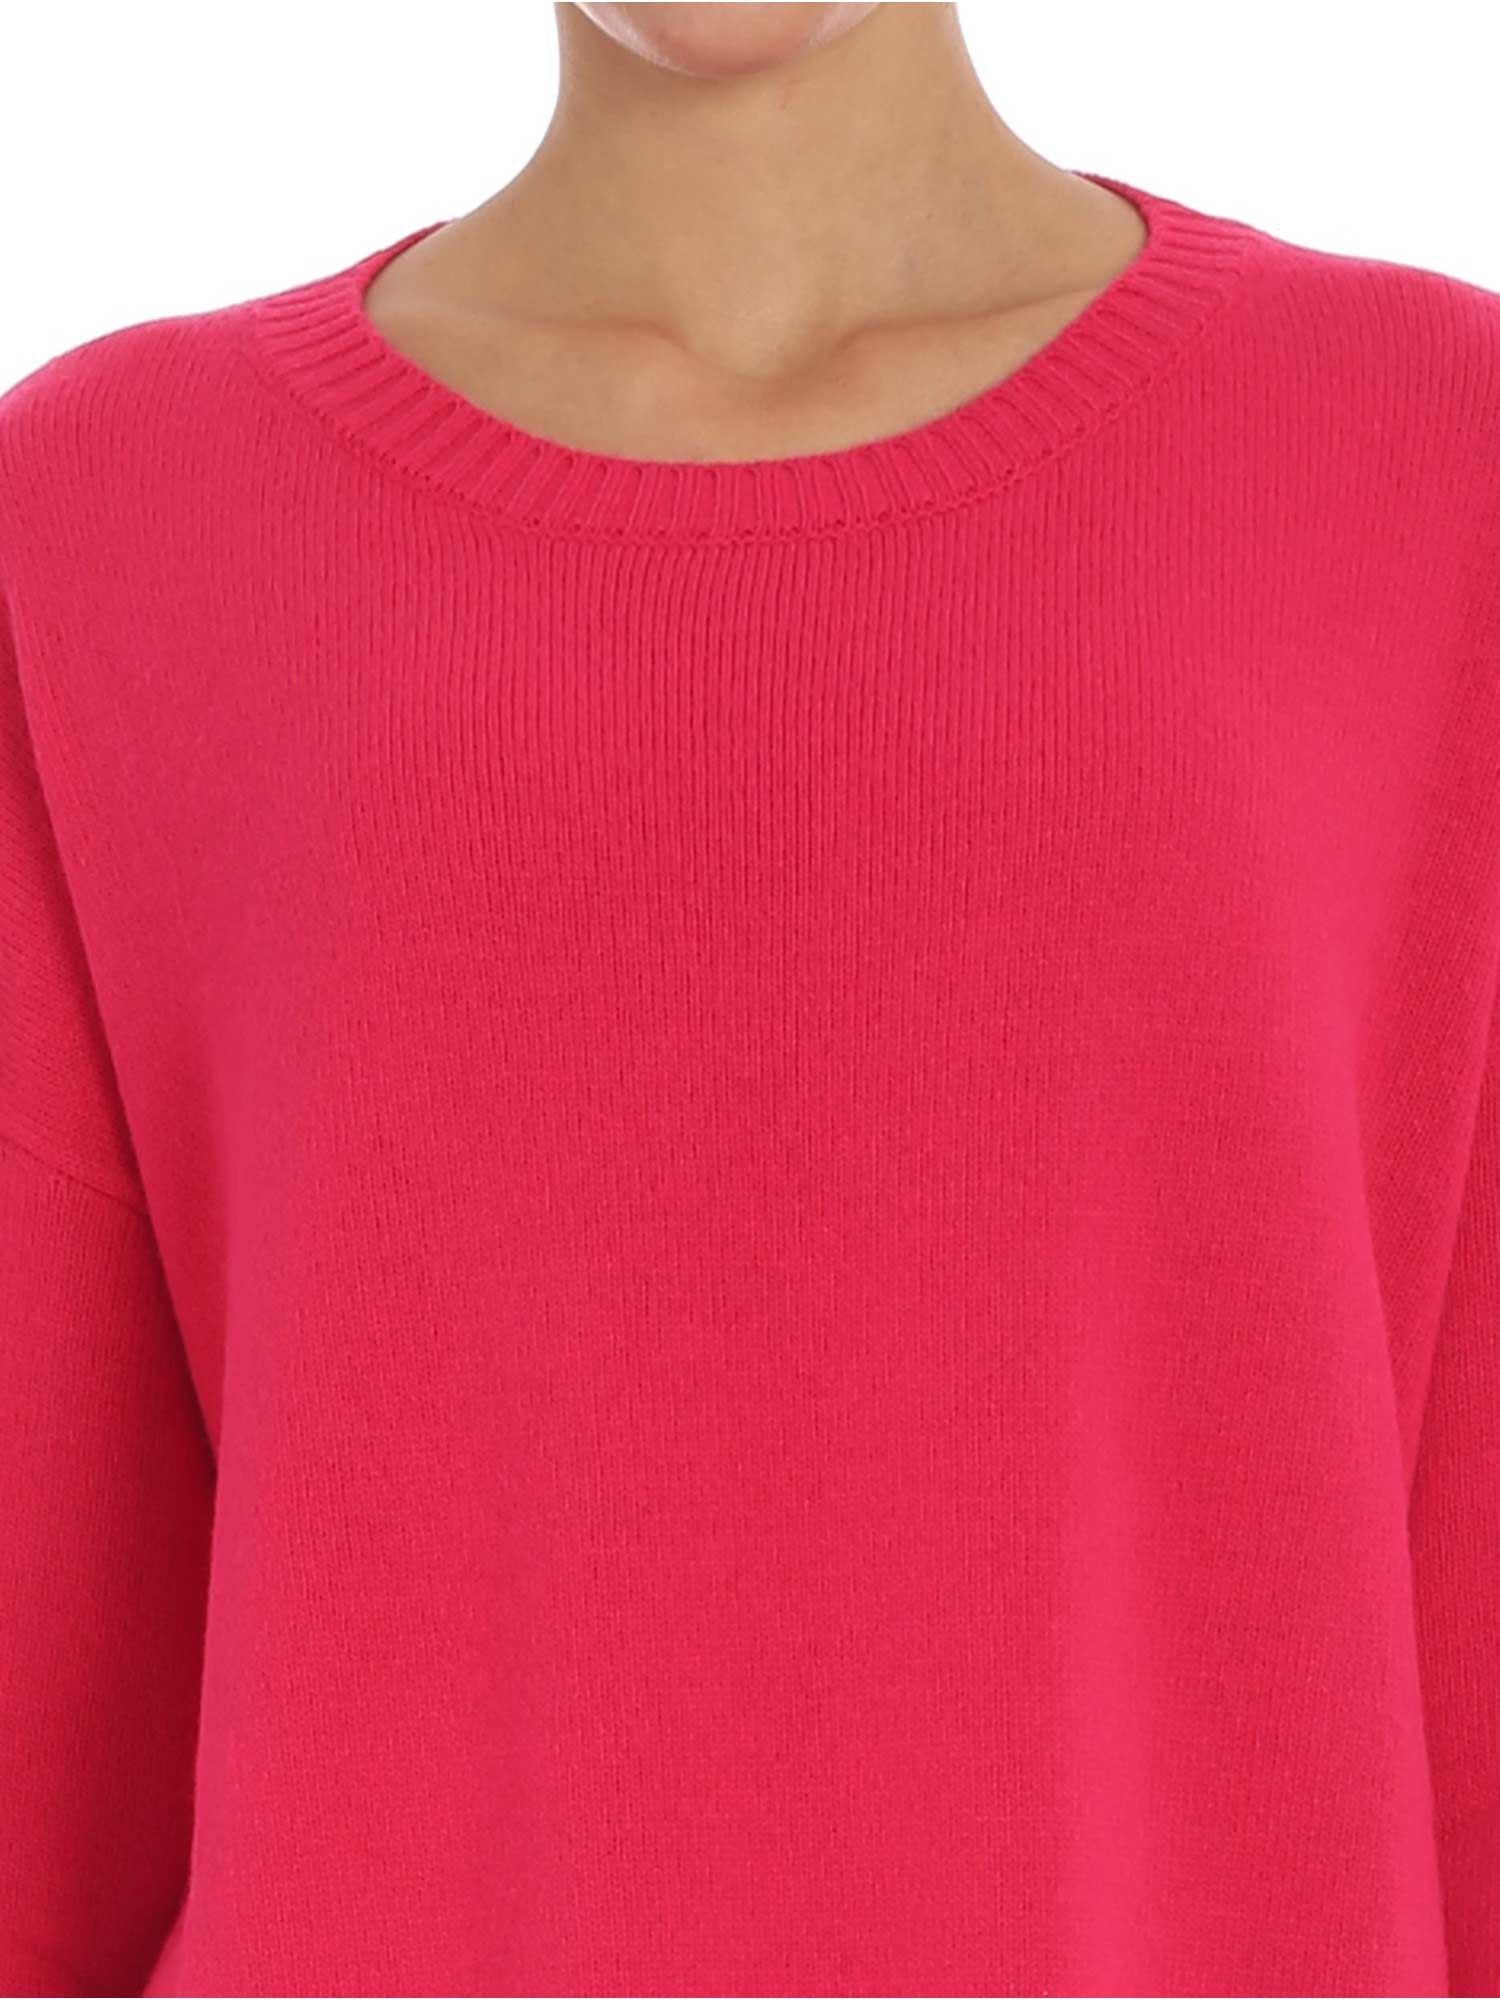 Lyst In Jucca Pink Pullover Fuchsia Overfit wx4TX